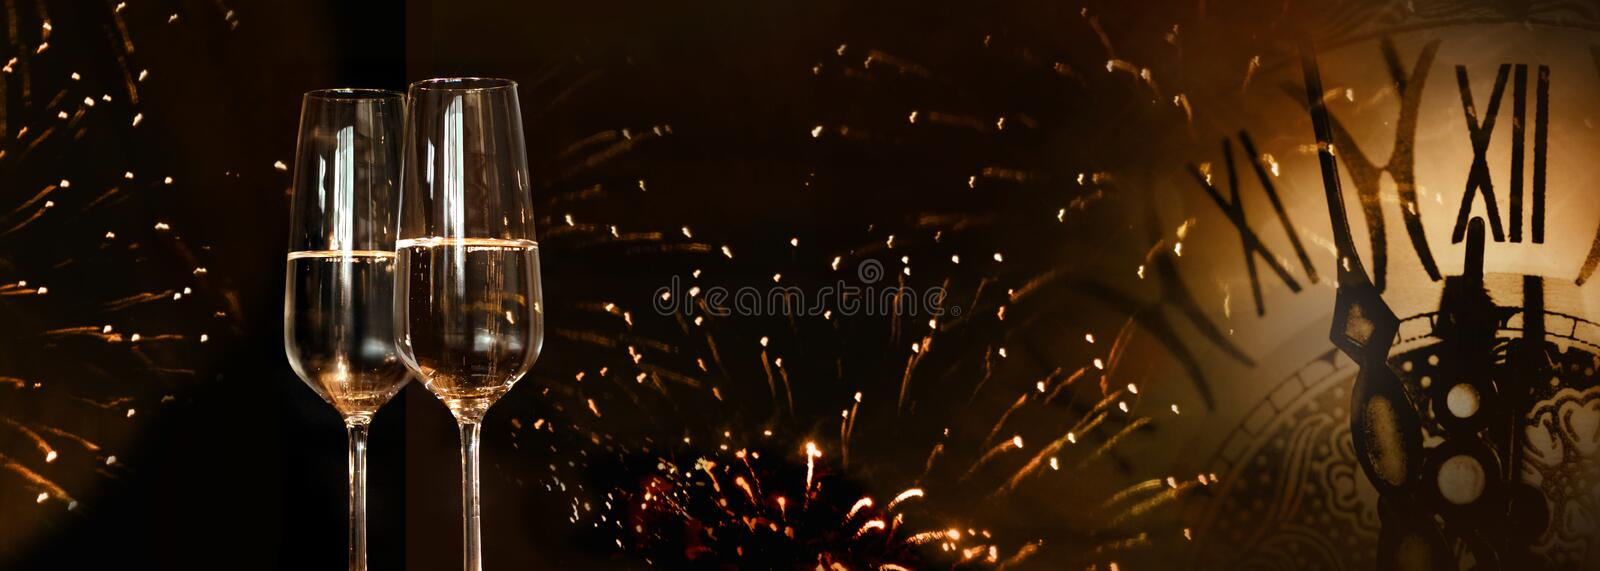 New year fireworks with champagne royalty free stock photography